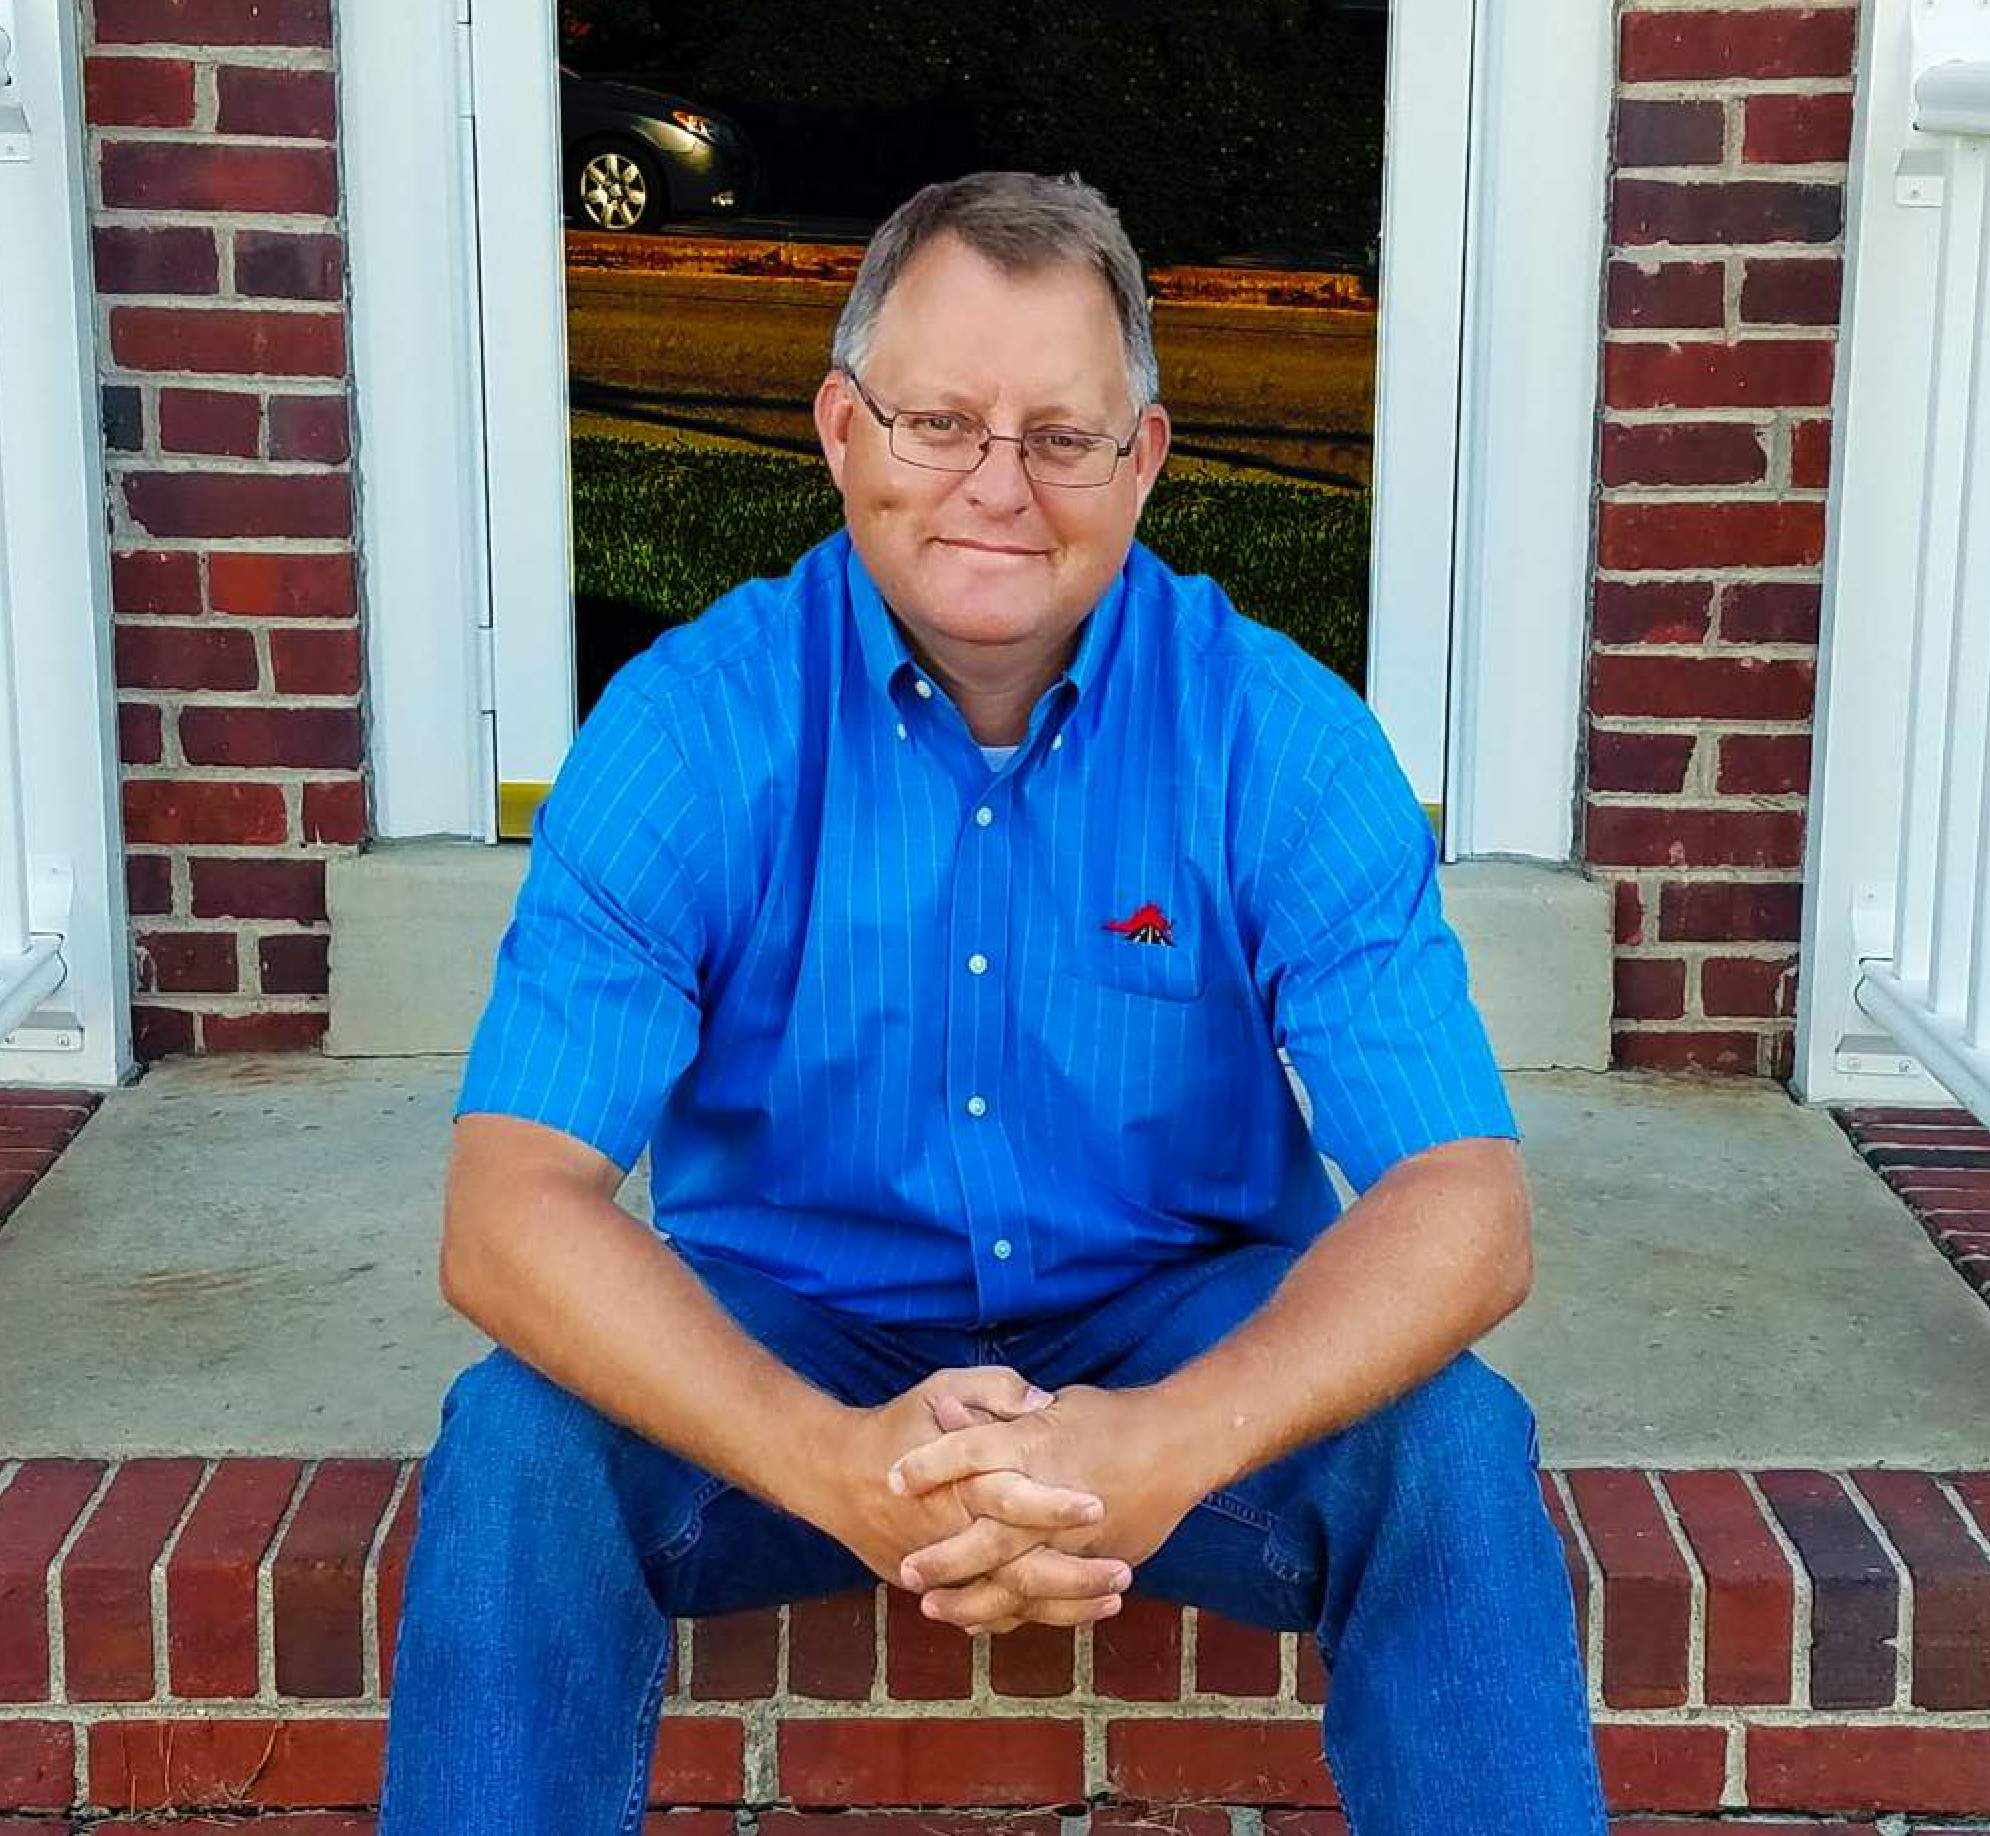 Prior to joining VAA 7 years ago, Clark spent 12 years with VDOT and 5 years in private consulting.